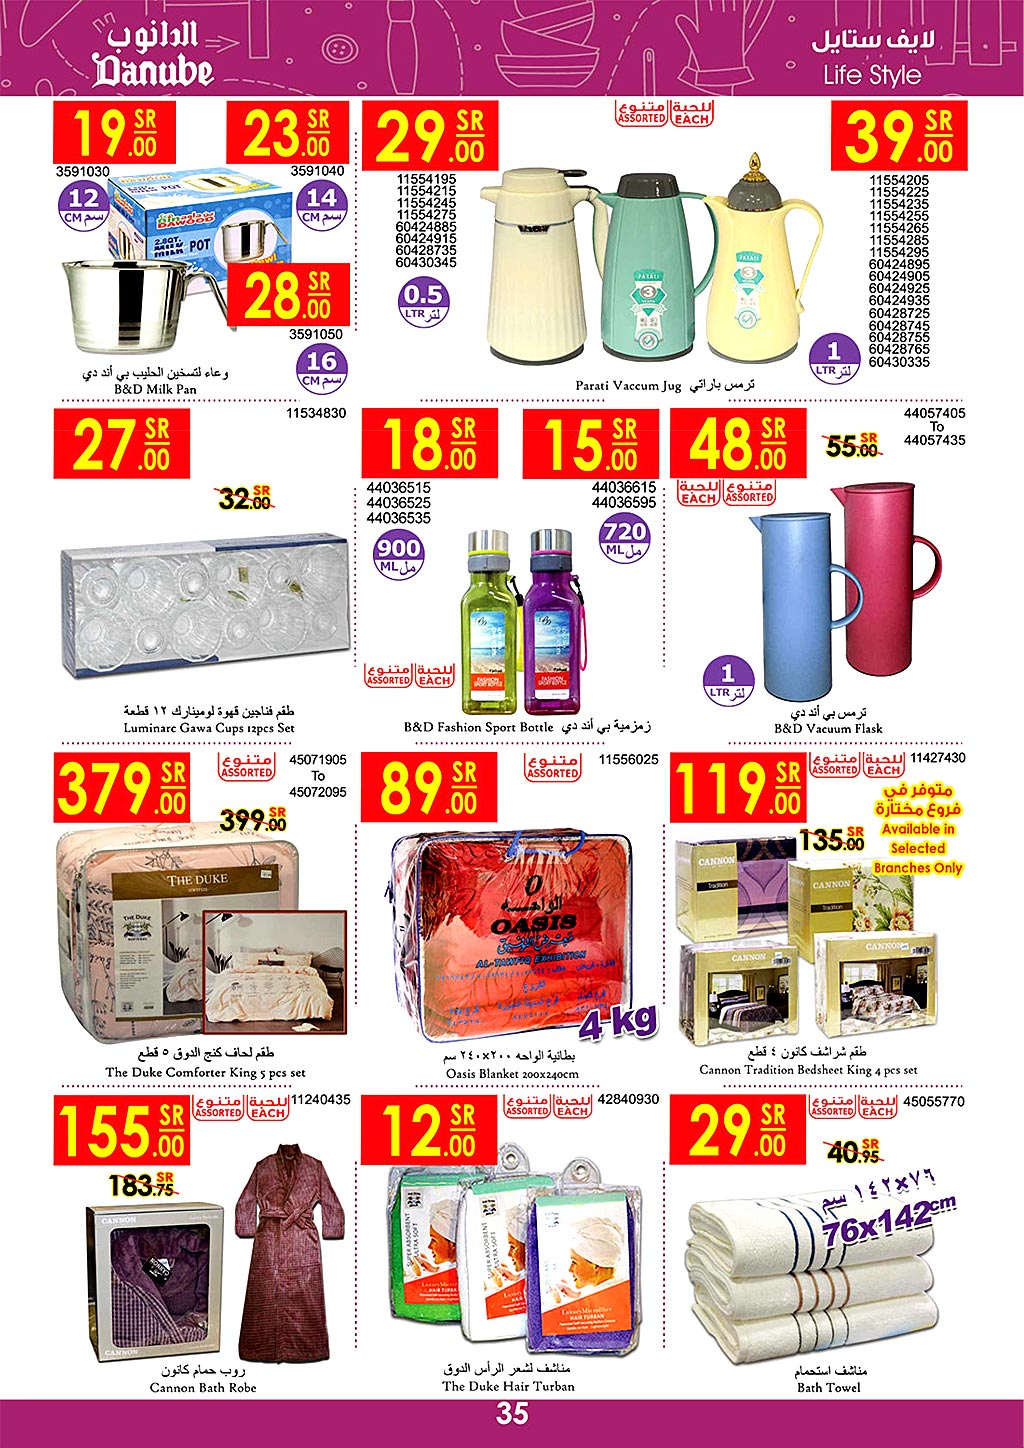 danube offers from 21aug to 28aug 2019 page number 35 عروض الدانوب من 21 أغسطس حتى 28 أغسطس 2019 صفحة رقم 35